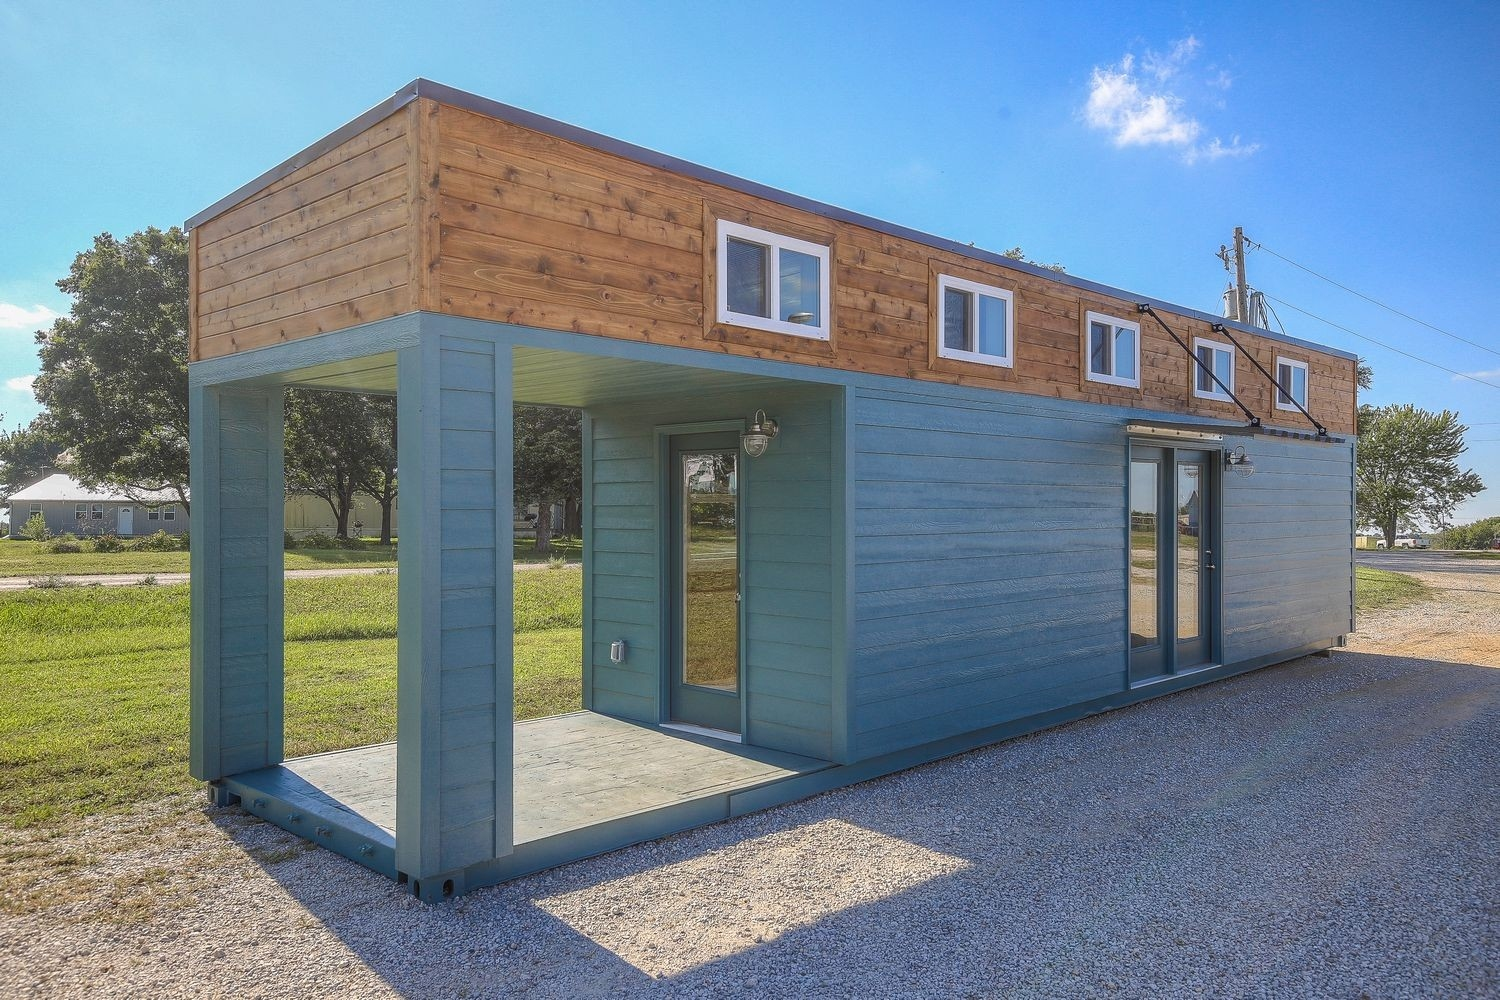 homes-built-from-shipping-containers-awesome-5-shipping-container-homes-you-can-order-right-now-curbed-of-homes-built-from-shipping-containers.jpg